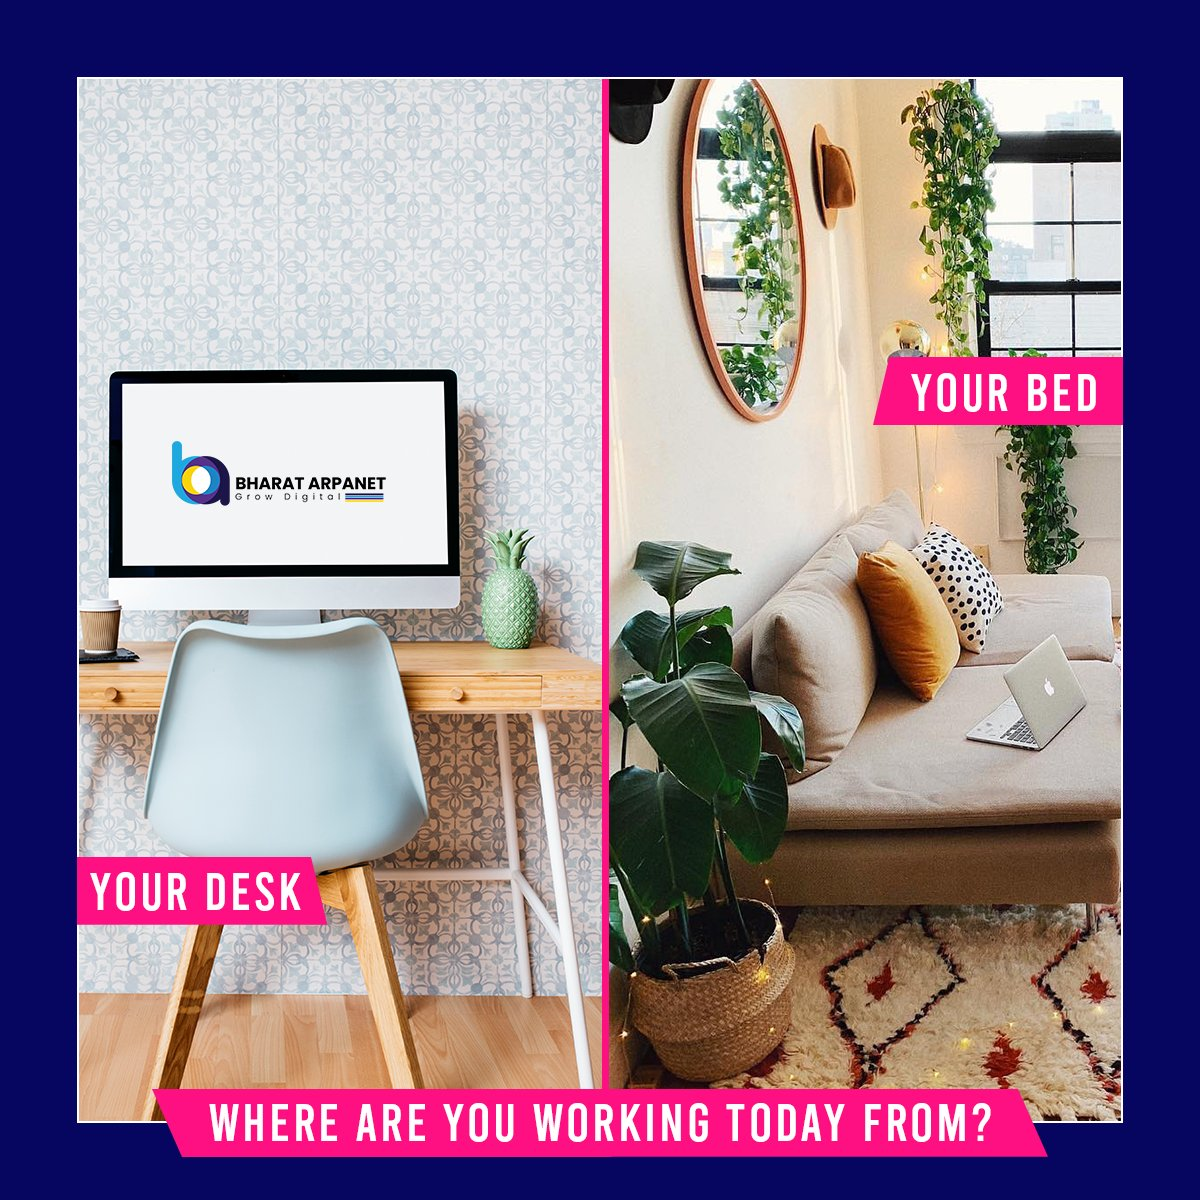 How is work from home going? Let us know in the comment section.  #lockdown2 #workfromhomelife #workfromhometips #workfromhomechallenge #wfhlife #BharatArpanet https://t.co/HiVfSUuTUY